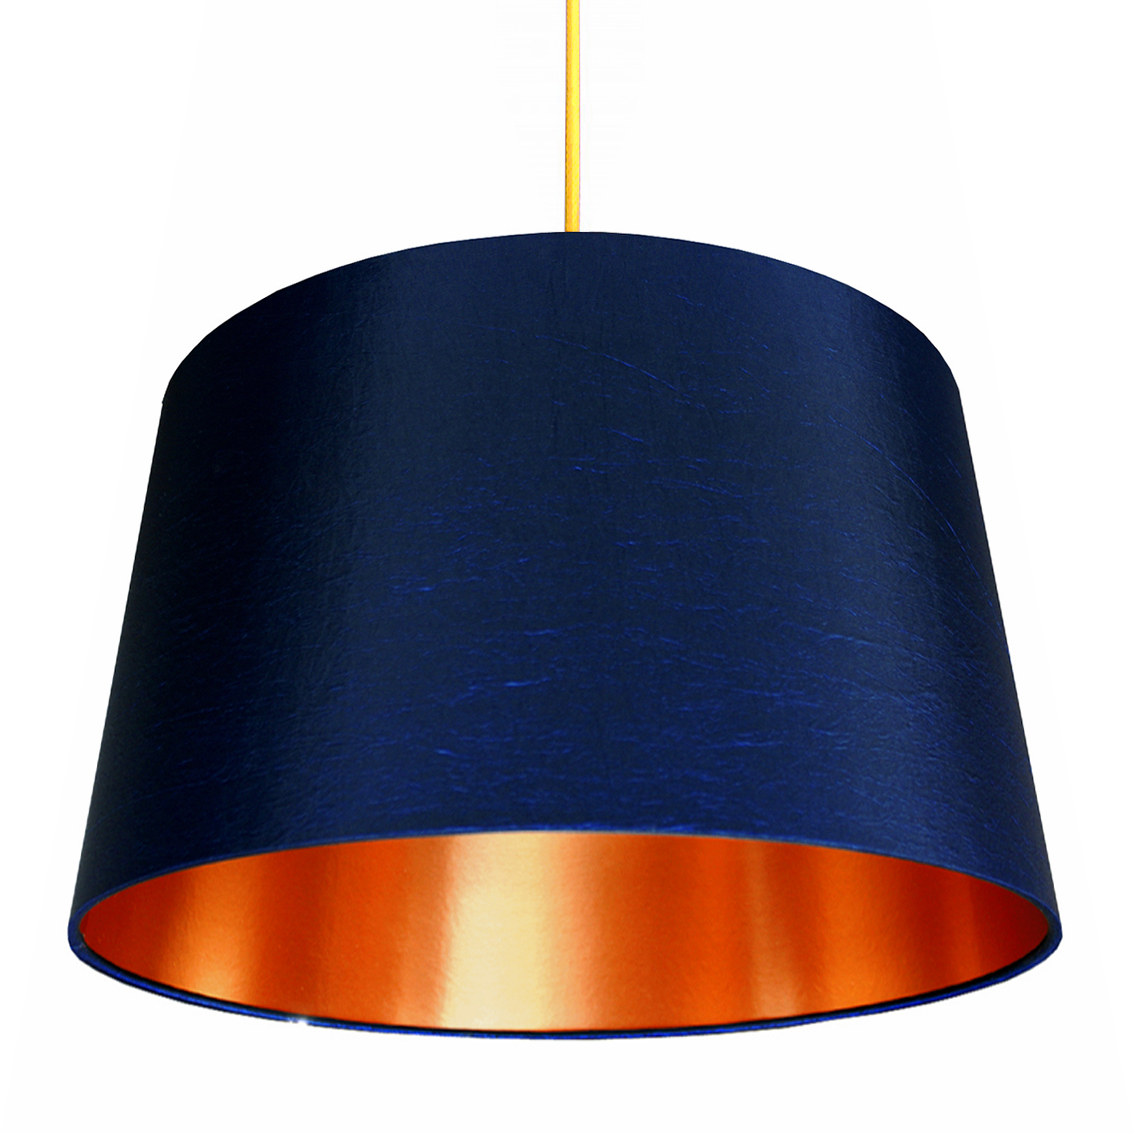 French Drum Lampshade In Midnight Blue With Brushed Copper